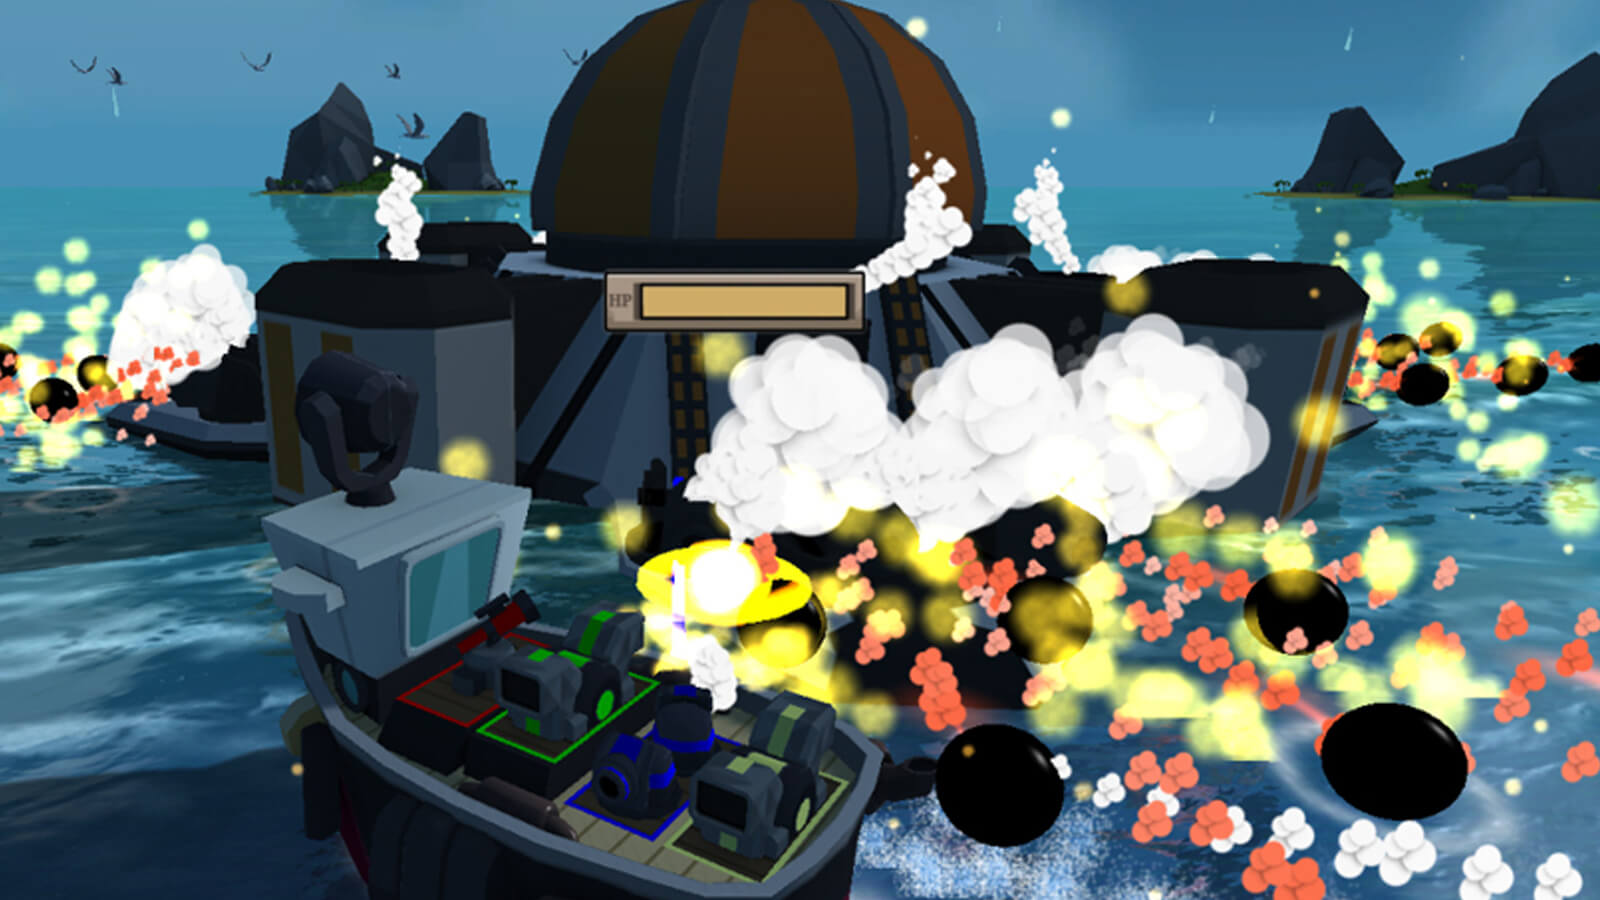 The players' boat dodges a barrage of cannon balls from a massive boss floating on the ocean